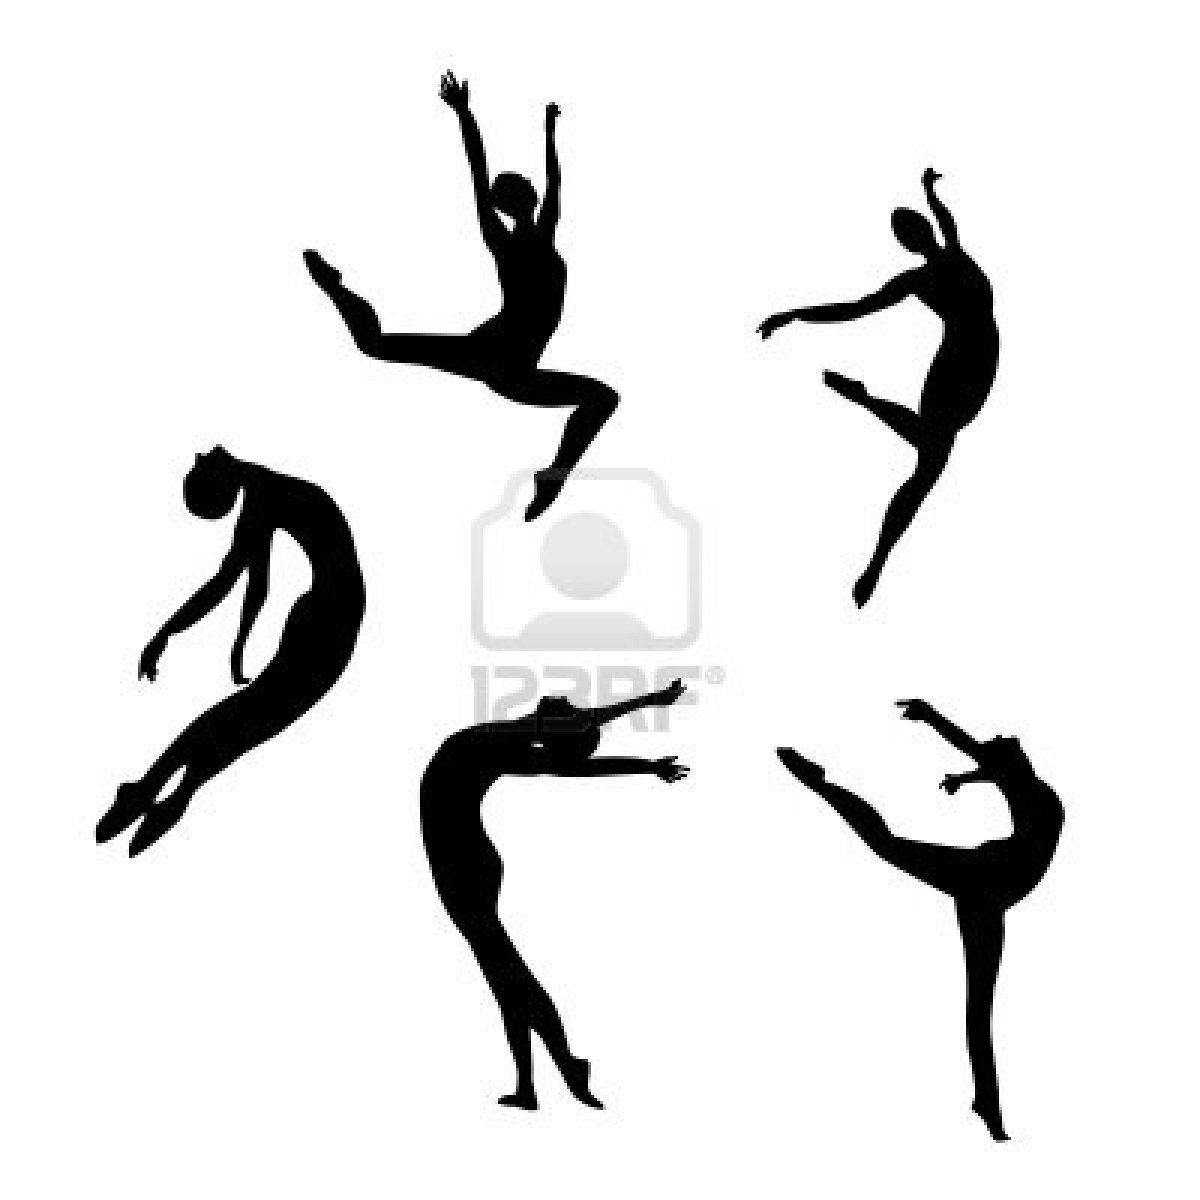 140 Modern Dance High Res Illustrations - Getty Images